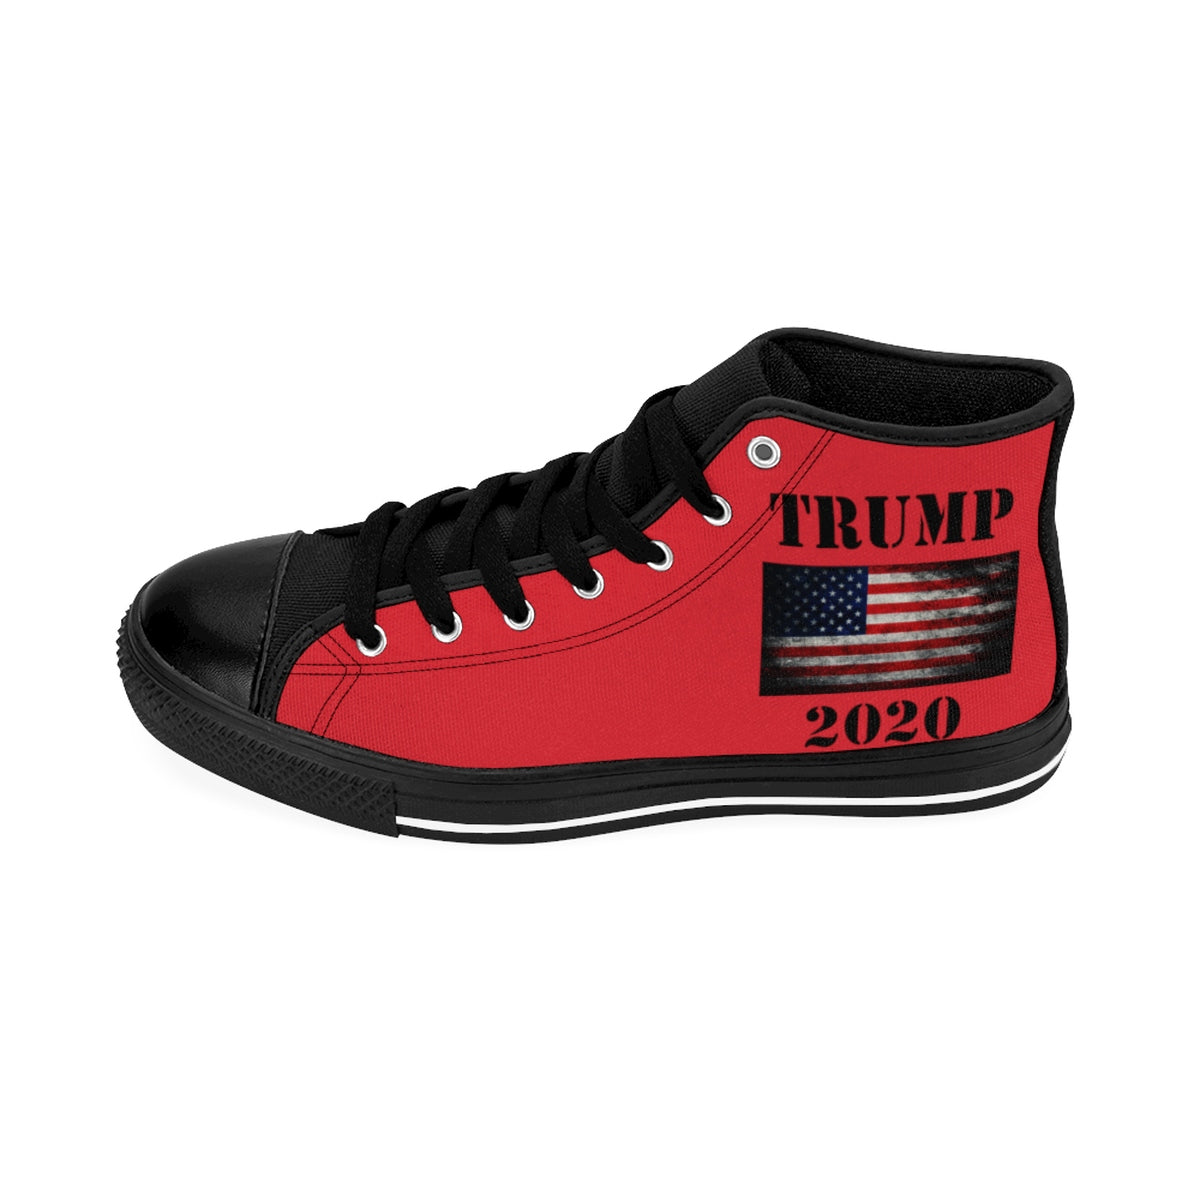 Trump 2020 Men's High-top Sneakers (order one size up)